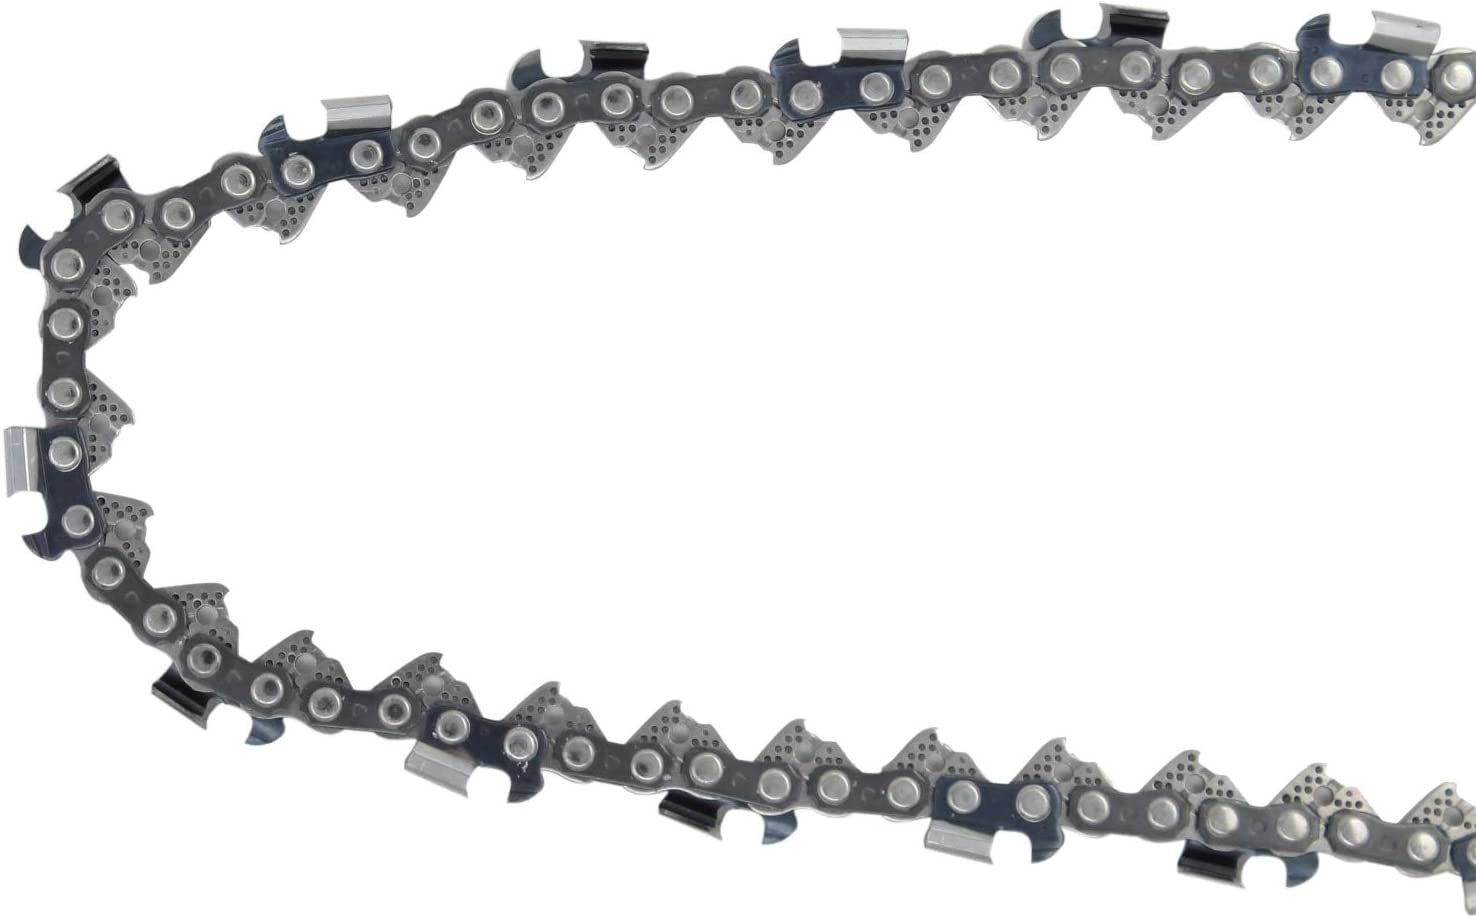 20 Length.325 Pitch 0.050 Gauge 78 Drive Links 20-Inch H78 20BPX Chainsaw Chain Replacement for Echo CS-520 Chainsaw Upstart Components